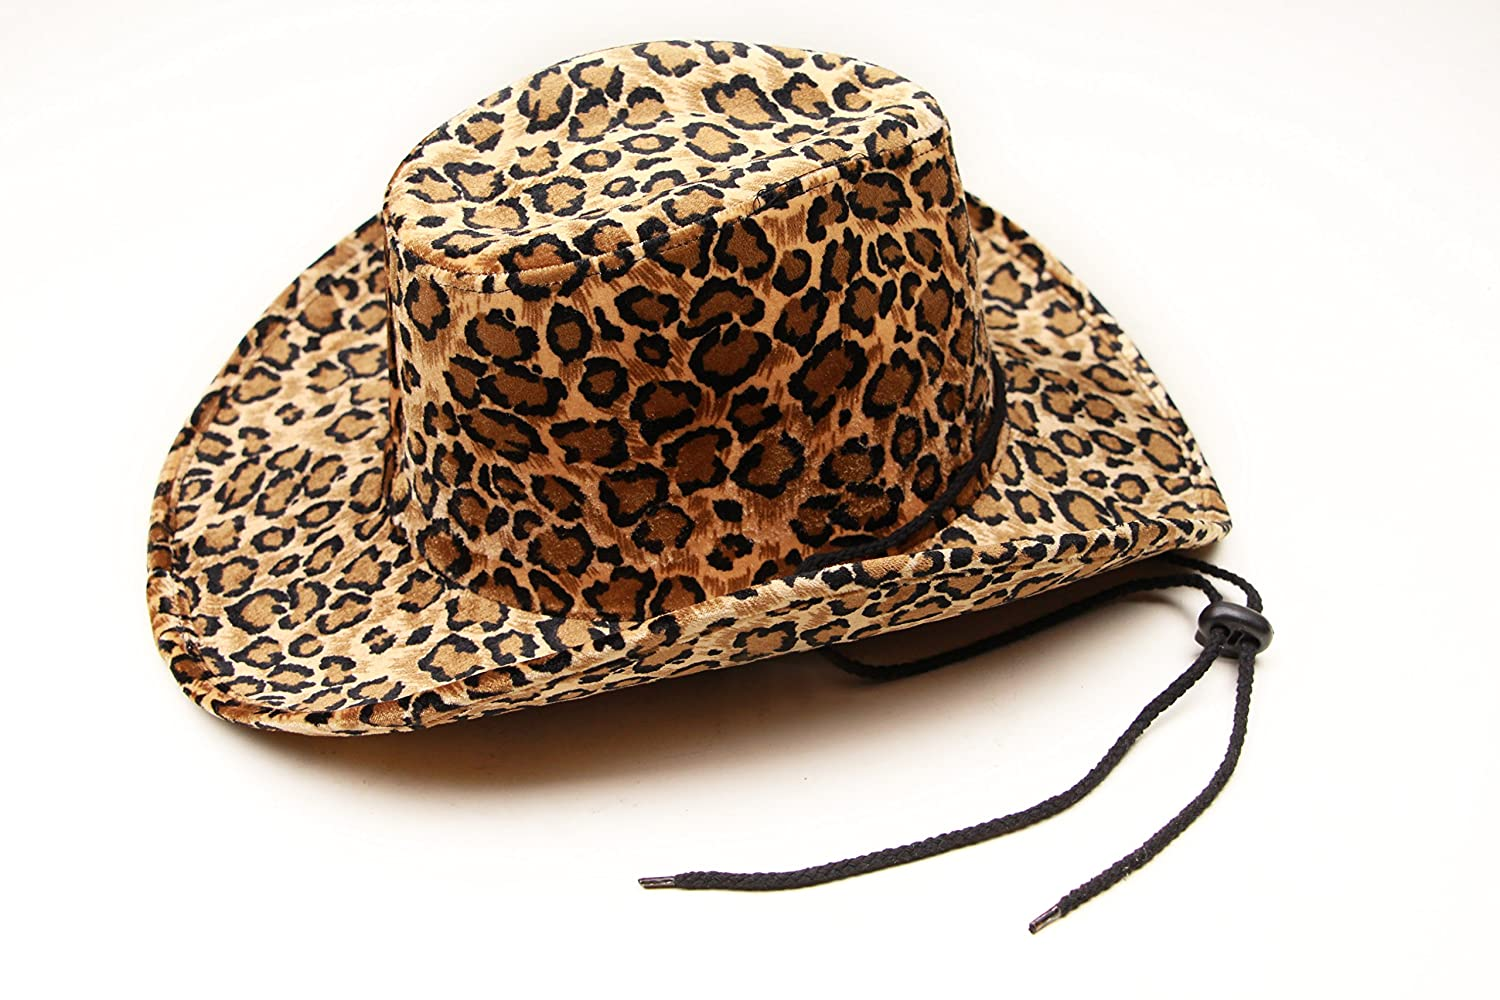 Amazon.com  CAPTAIN FLOATY Captain Women Cowboy Hat Cowgirl   Horse Riding Hats  Felt Summer Drifter Leopard Print One Size  Sports   Outdoors 82bd5b31f7c